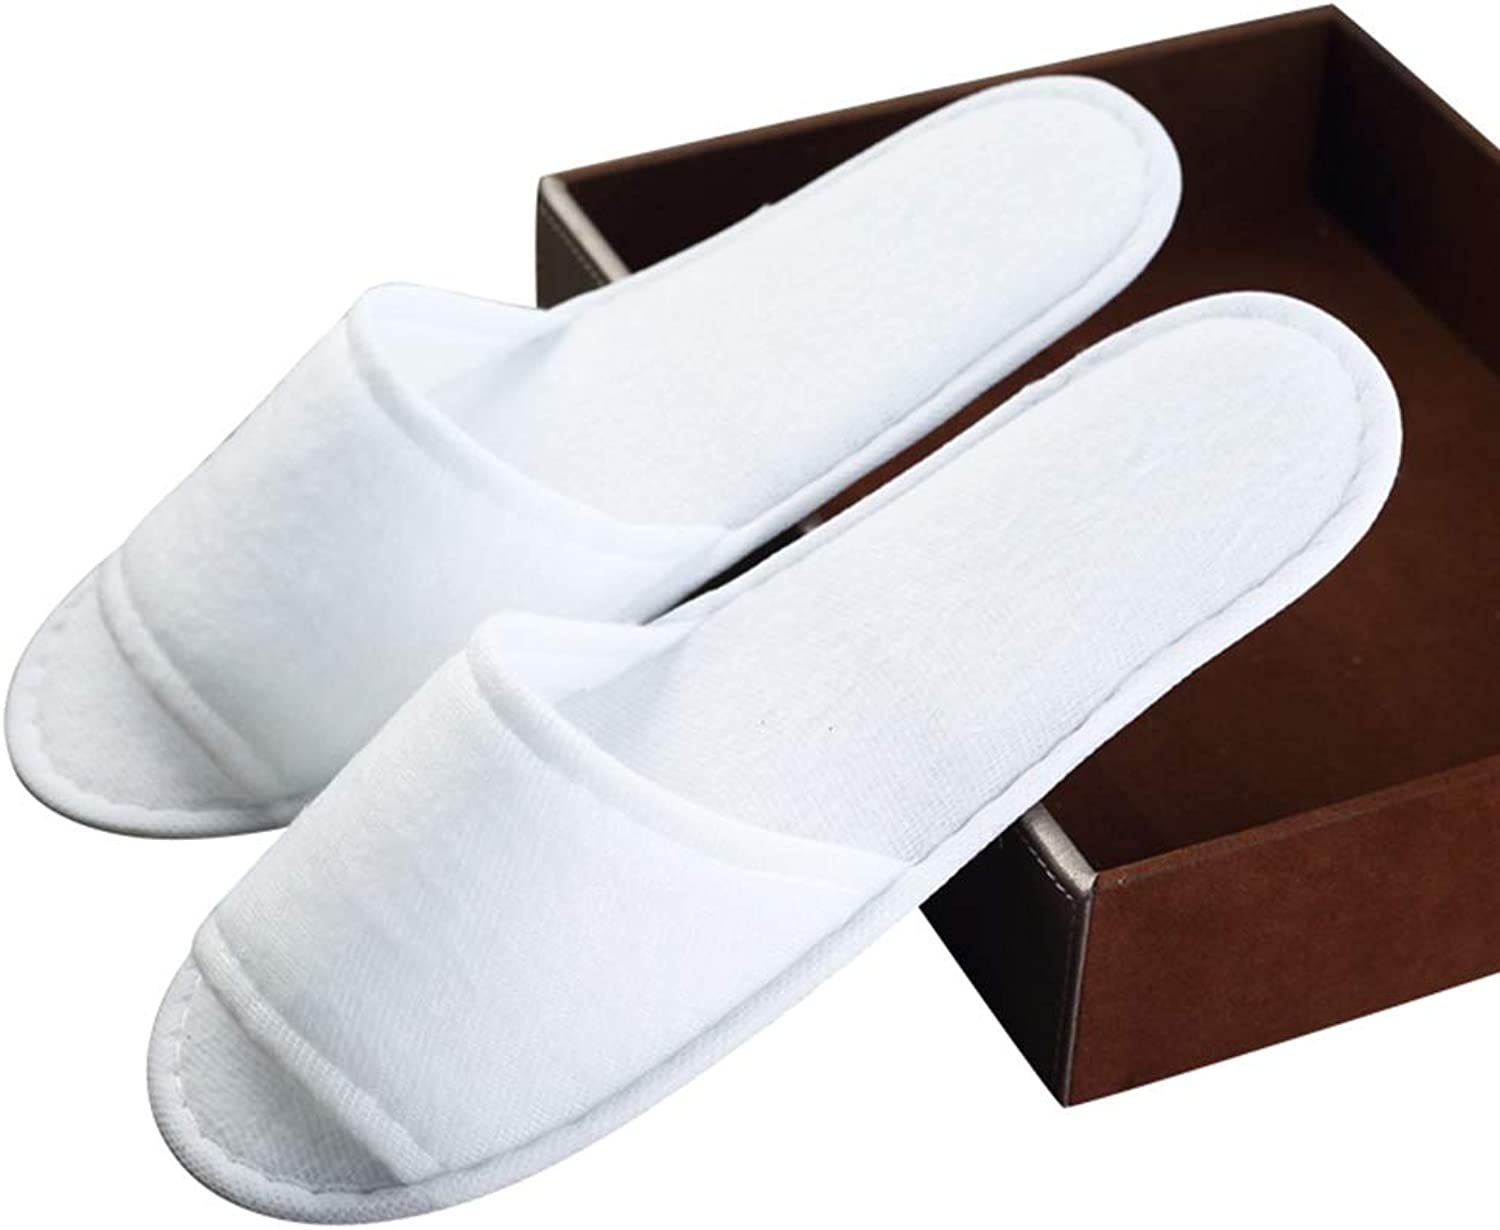 Pairs Lot Disposable Guest Slippers Travel Hotel Slippers SPA Slipper shoes Comfortable White Featured Cotton Terry Slippers Individually Packed for Men and Women 24 50 100 Pack (Edition   24 Pairs)